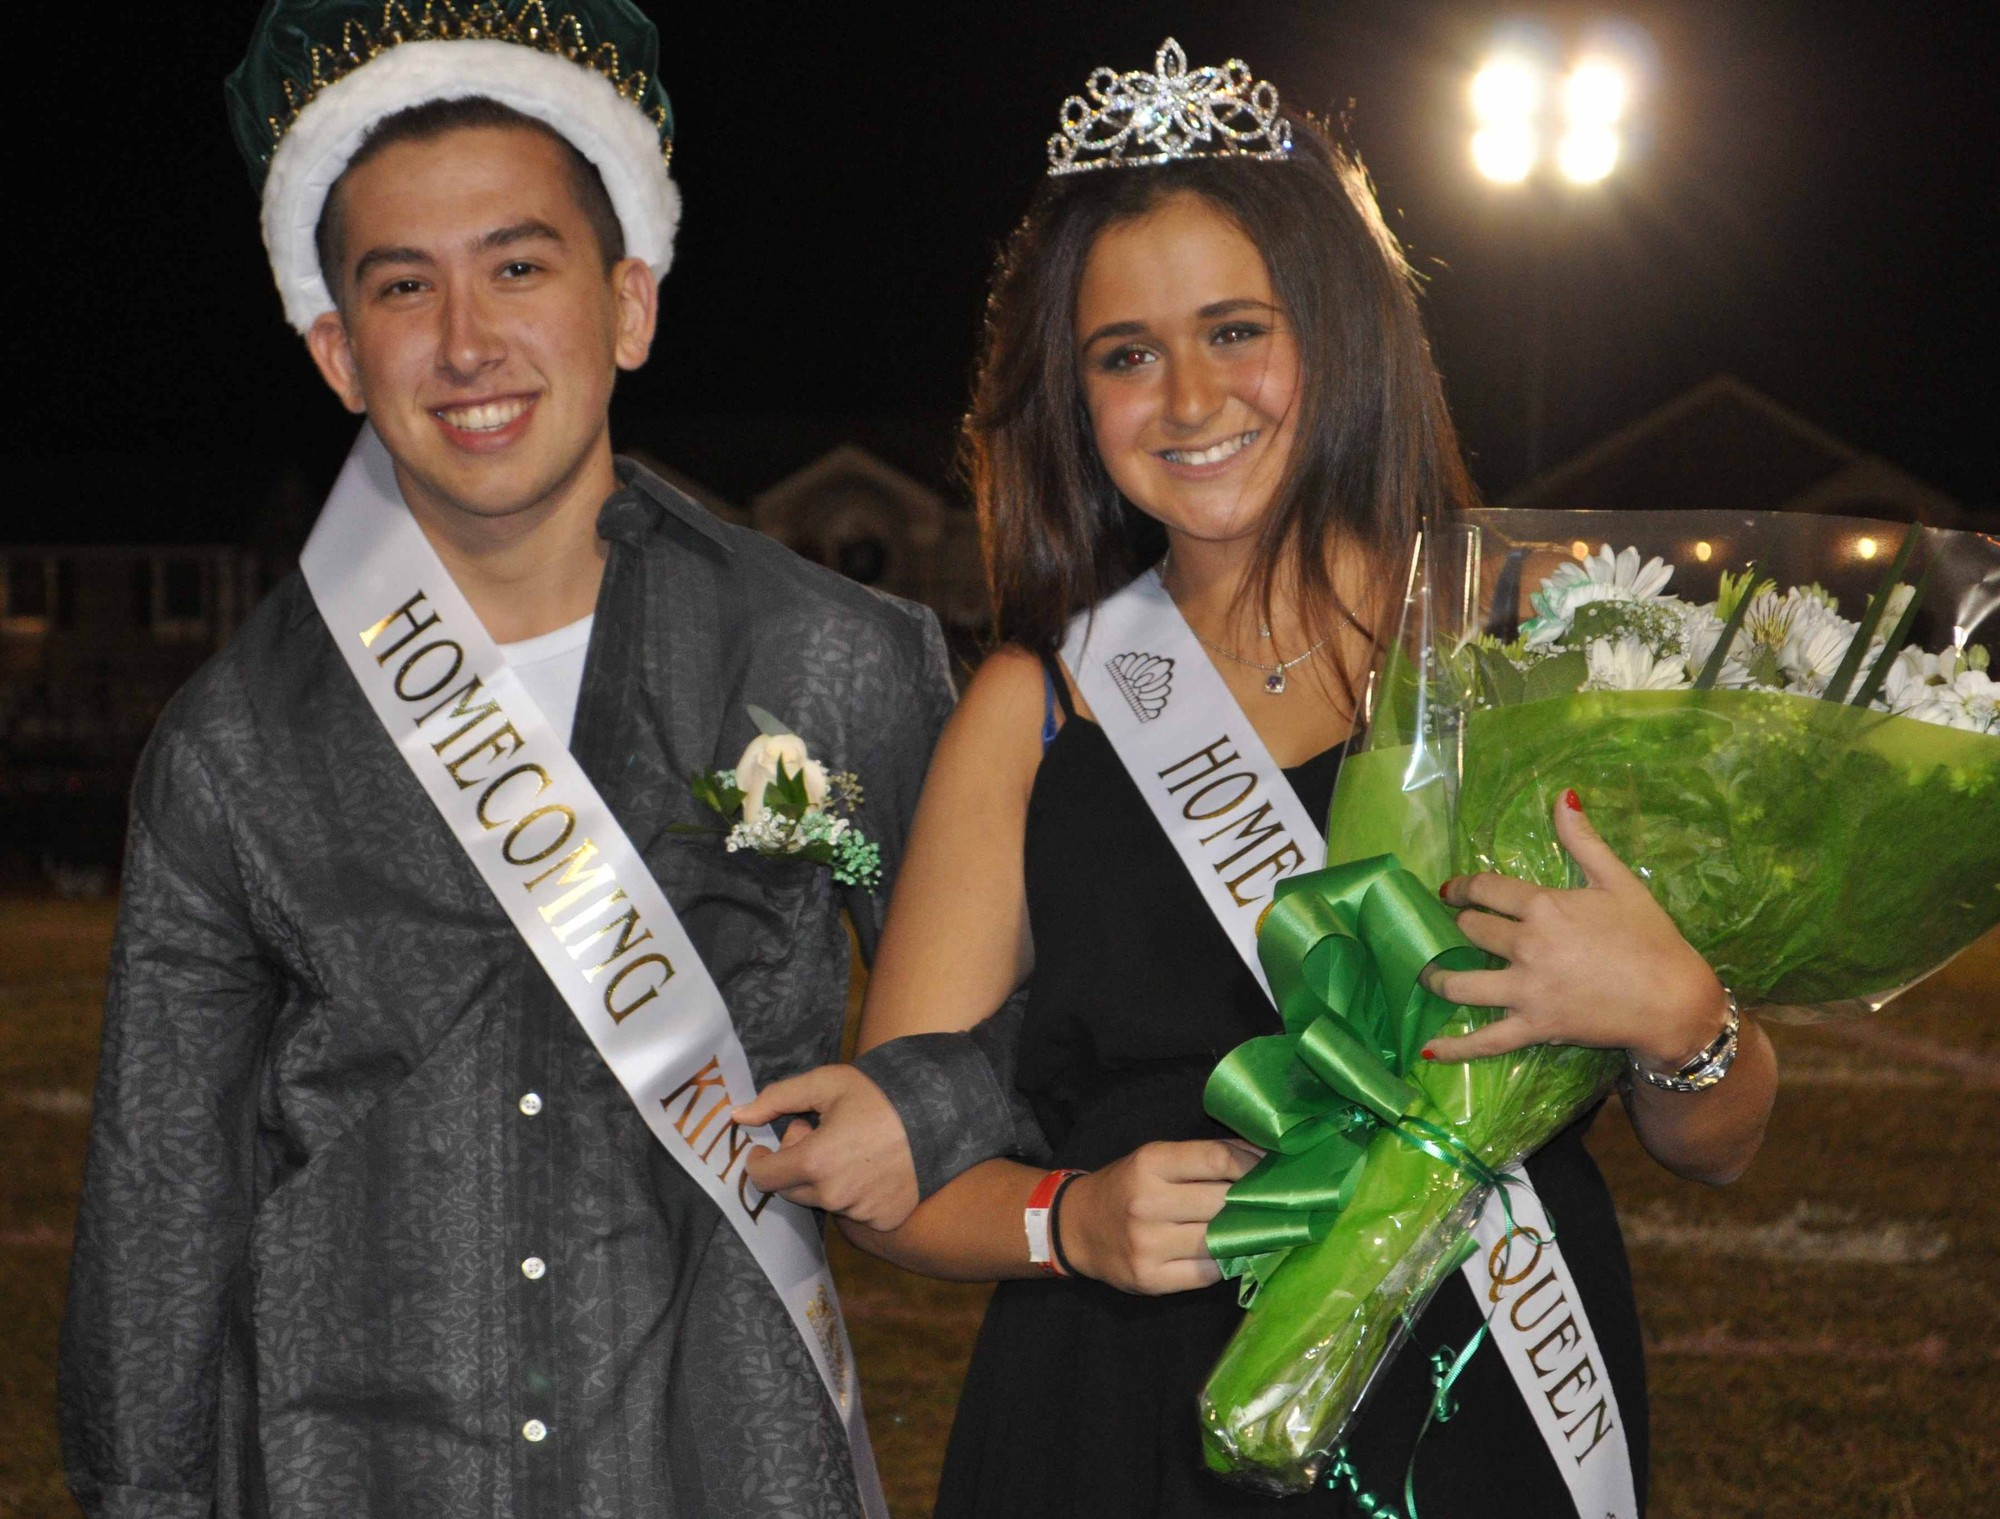 Seniors Jake Lapidot and Rachel Acampora were crowned Homecoming king and queens.